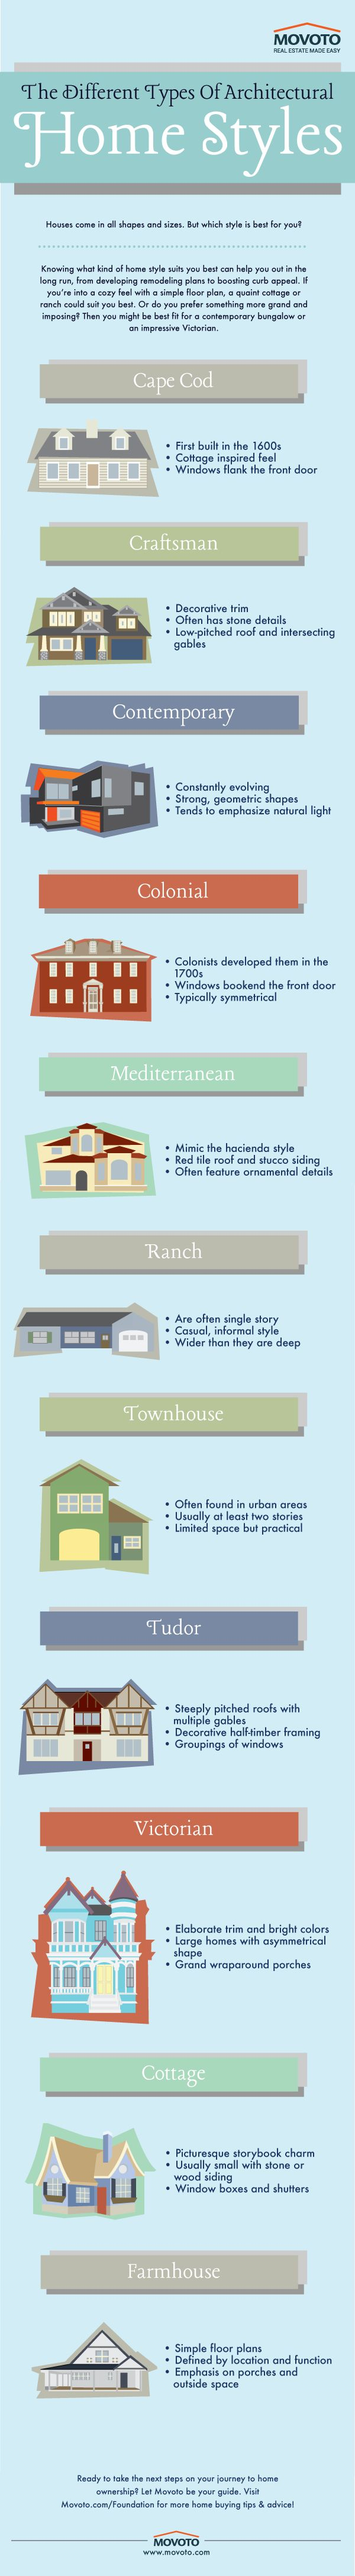 Infographic how to identify the different styles of home architecture